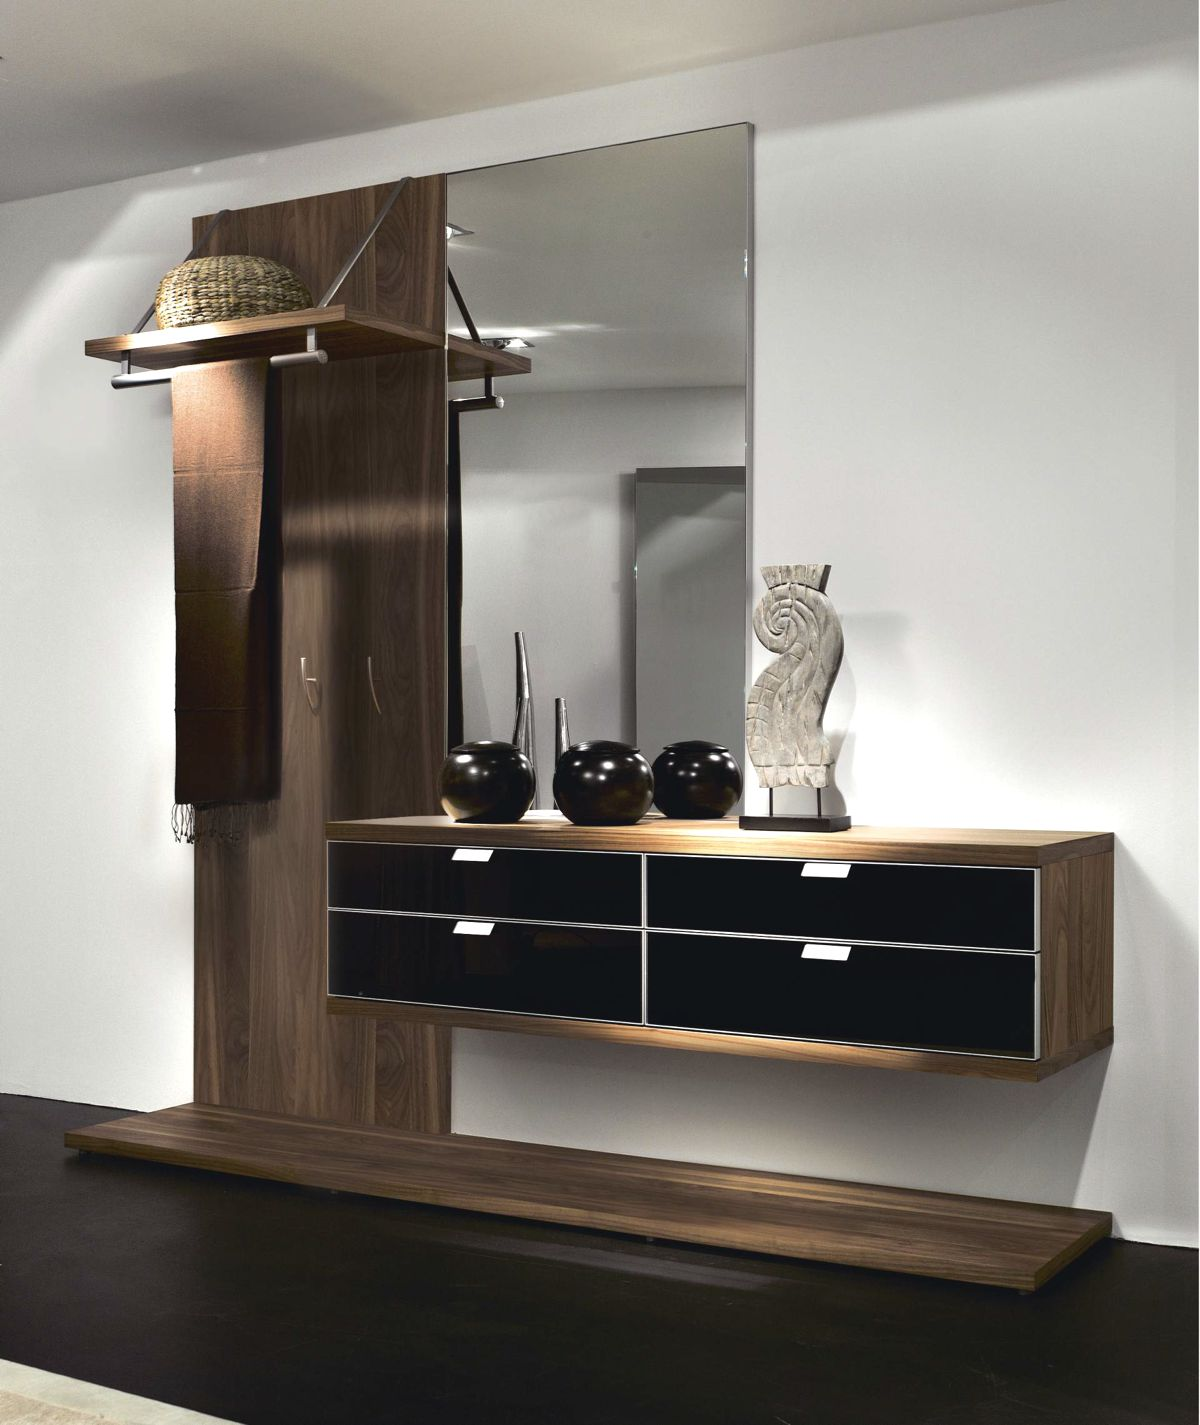 h lsta garderobe h ls die einrichtung. Black Bedroom Furniture Sets. Home Design Ideas